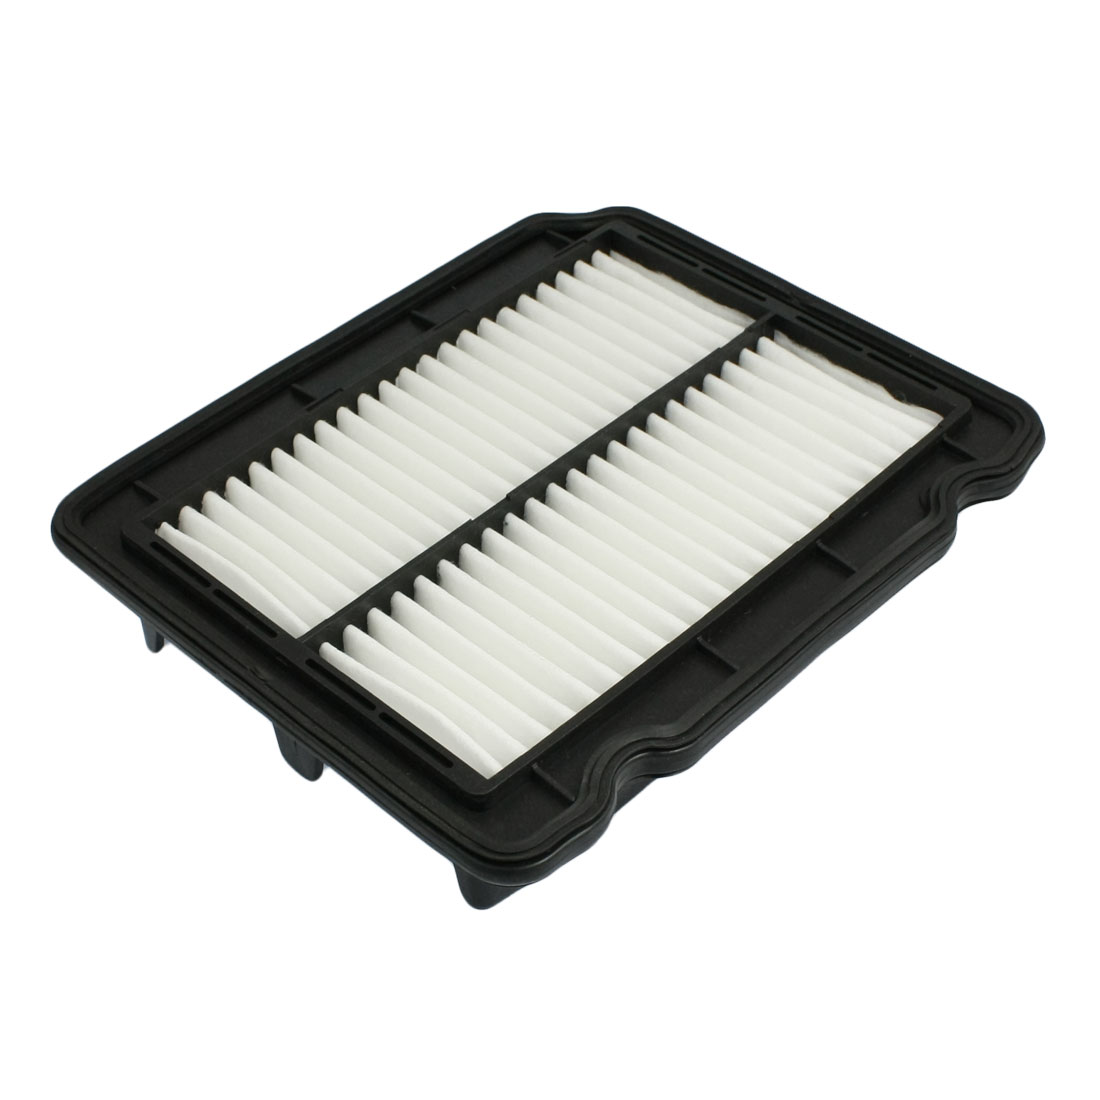 Auto Truck Car Air Intake Filter White Black for Chevrolet Aveo